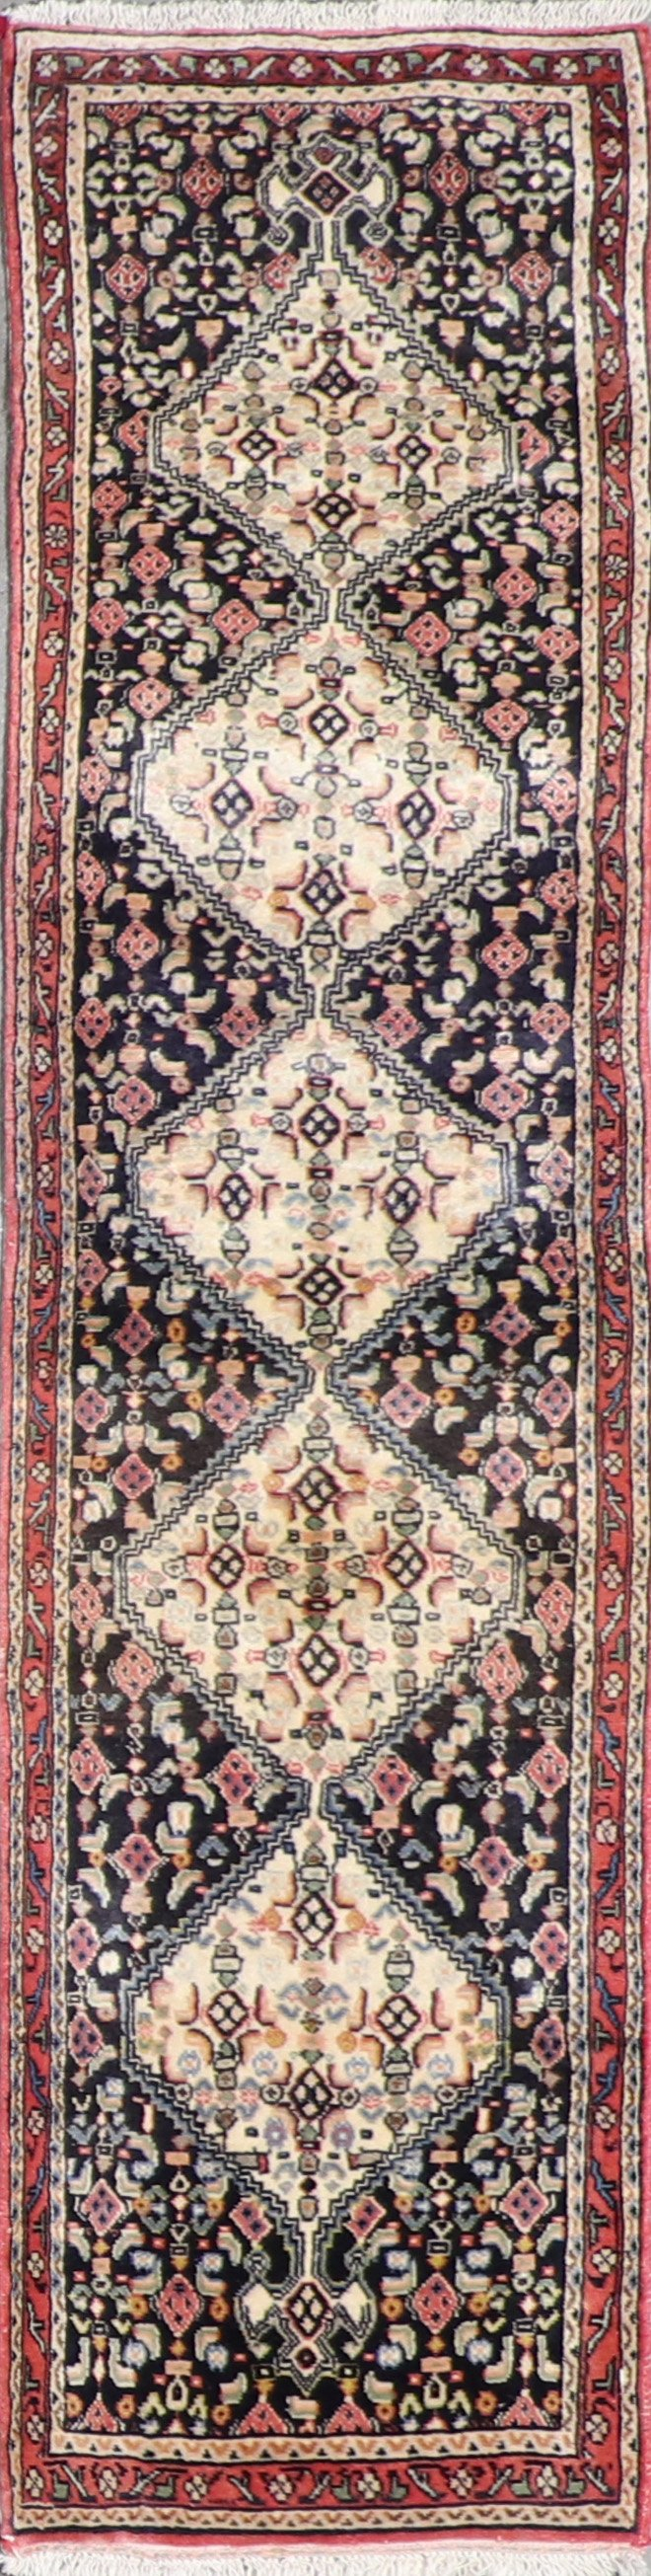 """1'8""""x7'2"""" Traditional Persian Tabriz Wool Hand-Knotted Rug - Direct Rug Import 